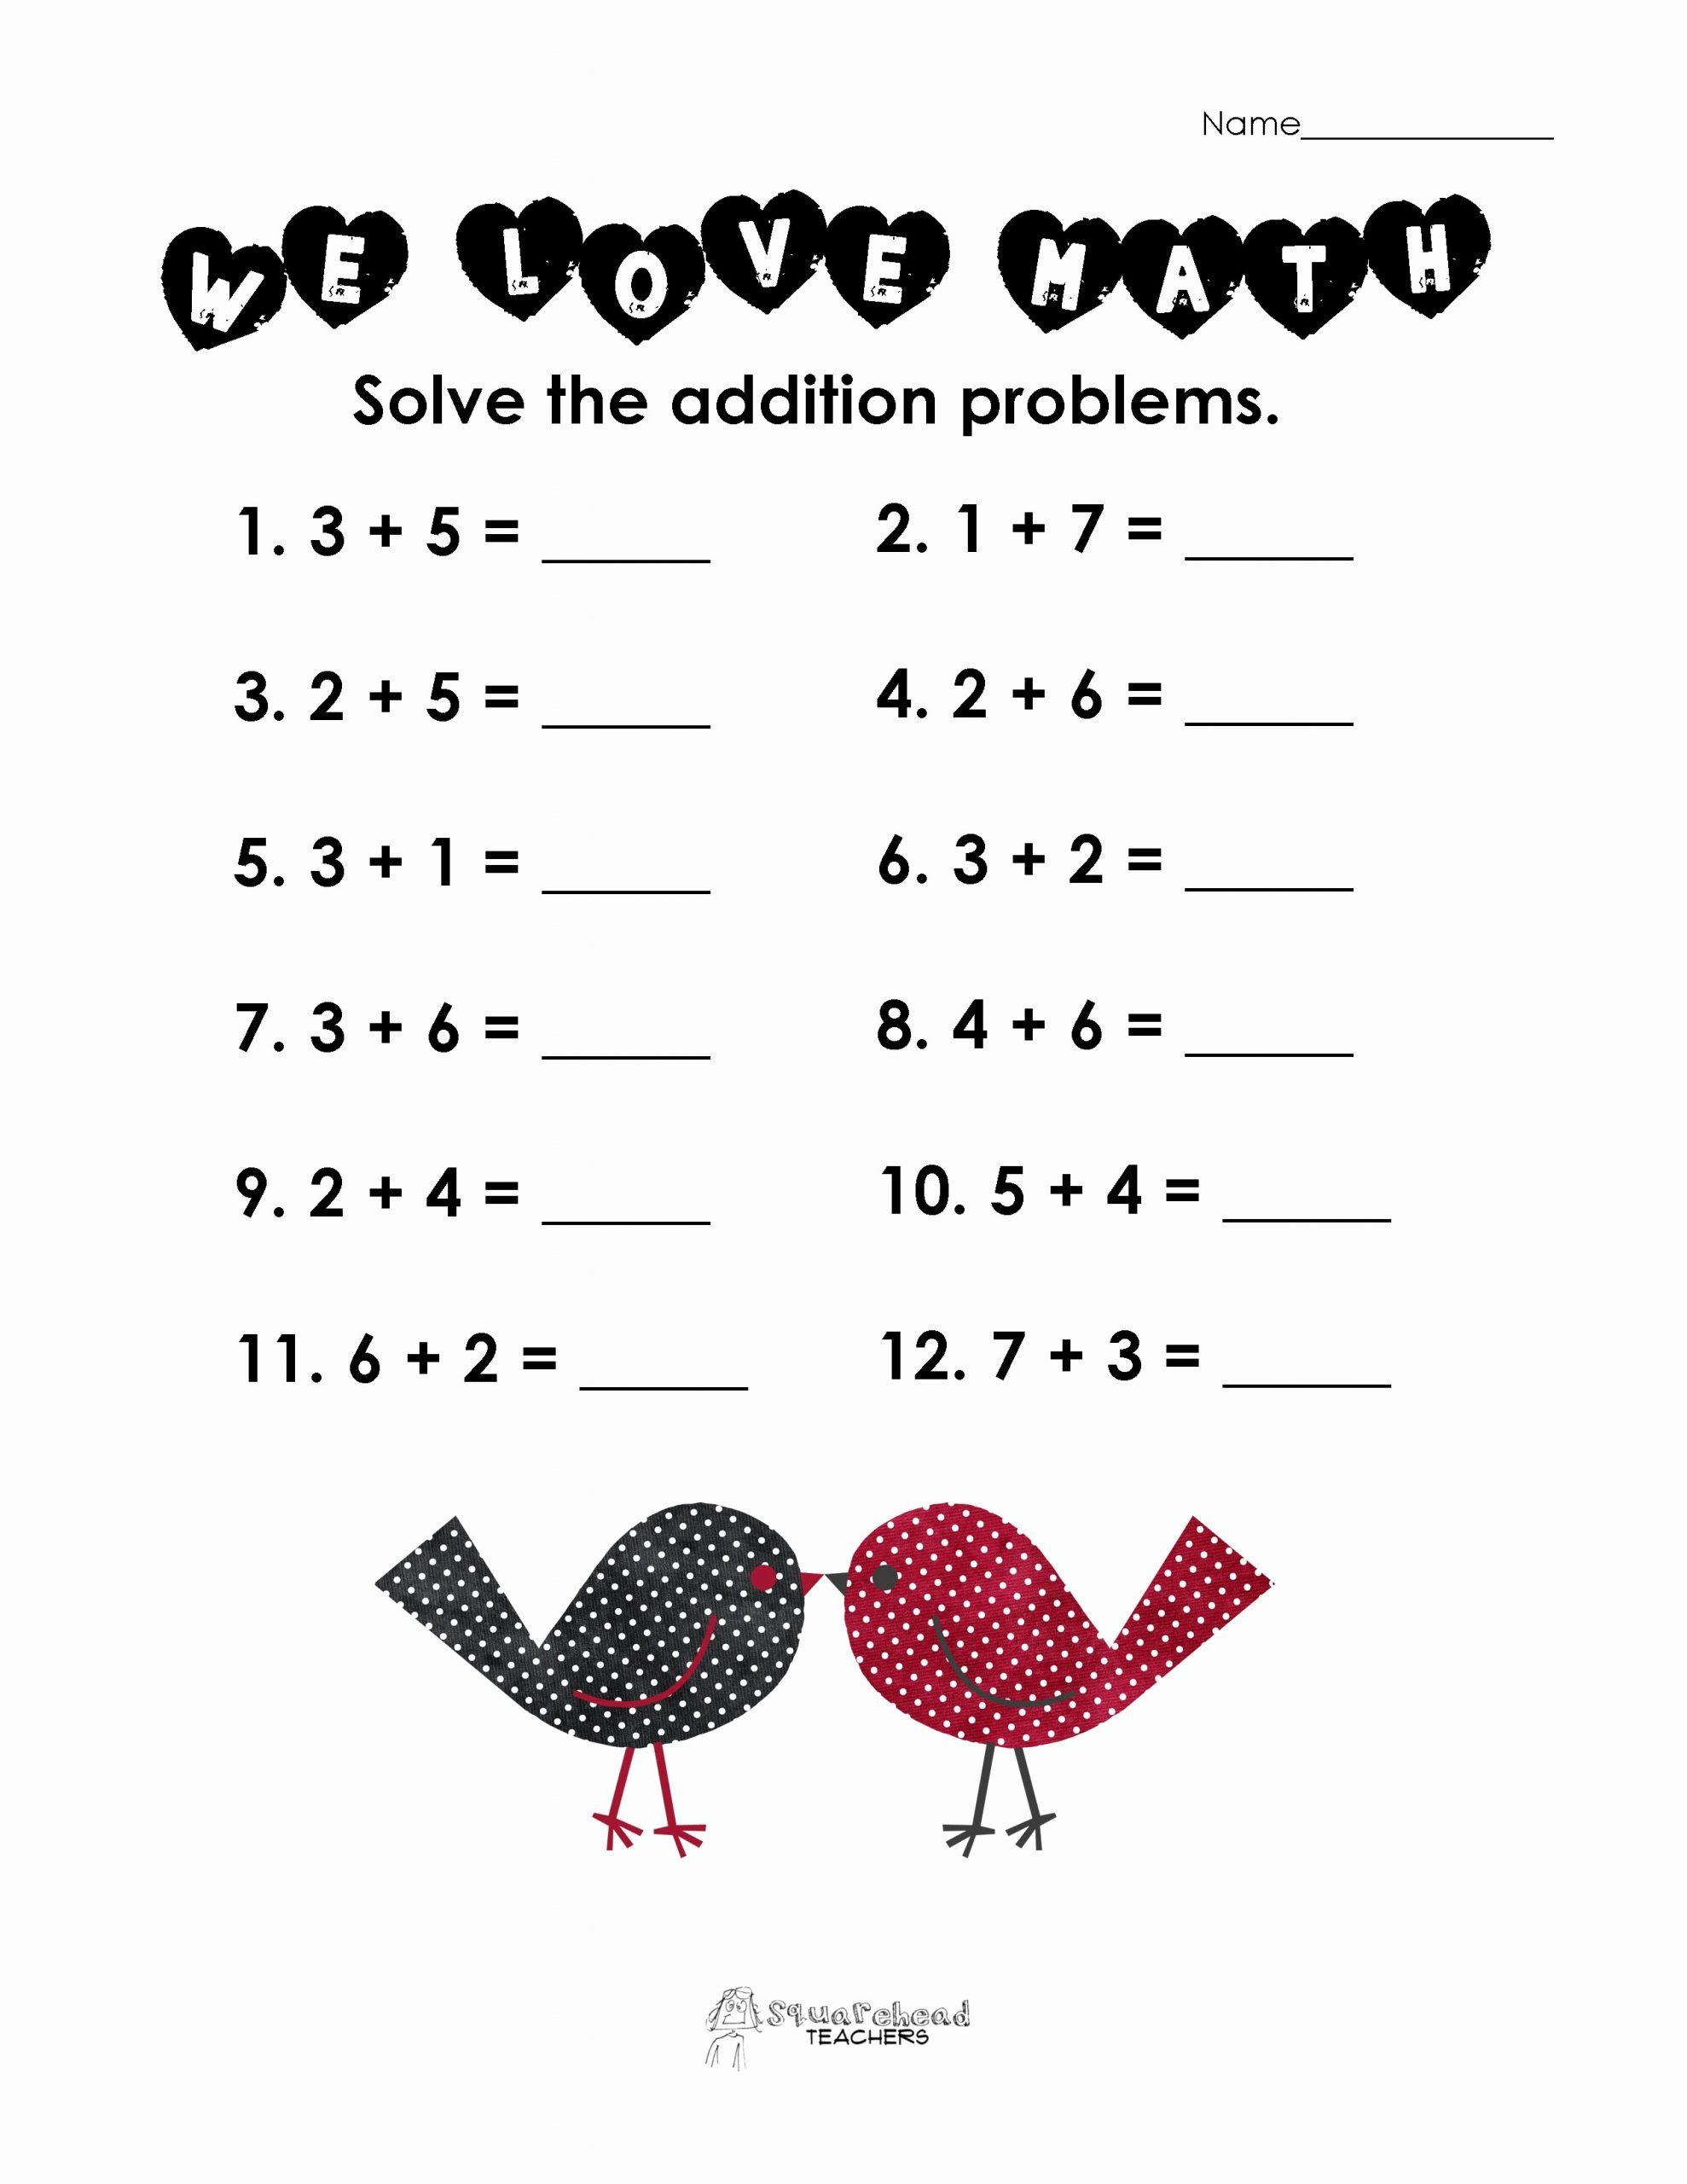 Valentines Day Multiplication Worksheets Fresh Valentine Worksheets for Second Graders Valentines Day Math